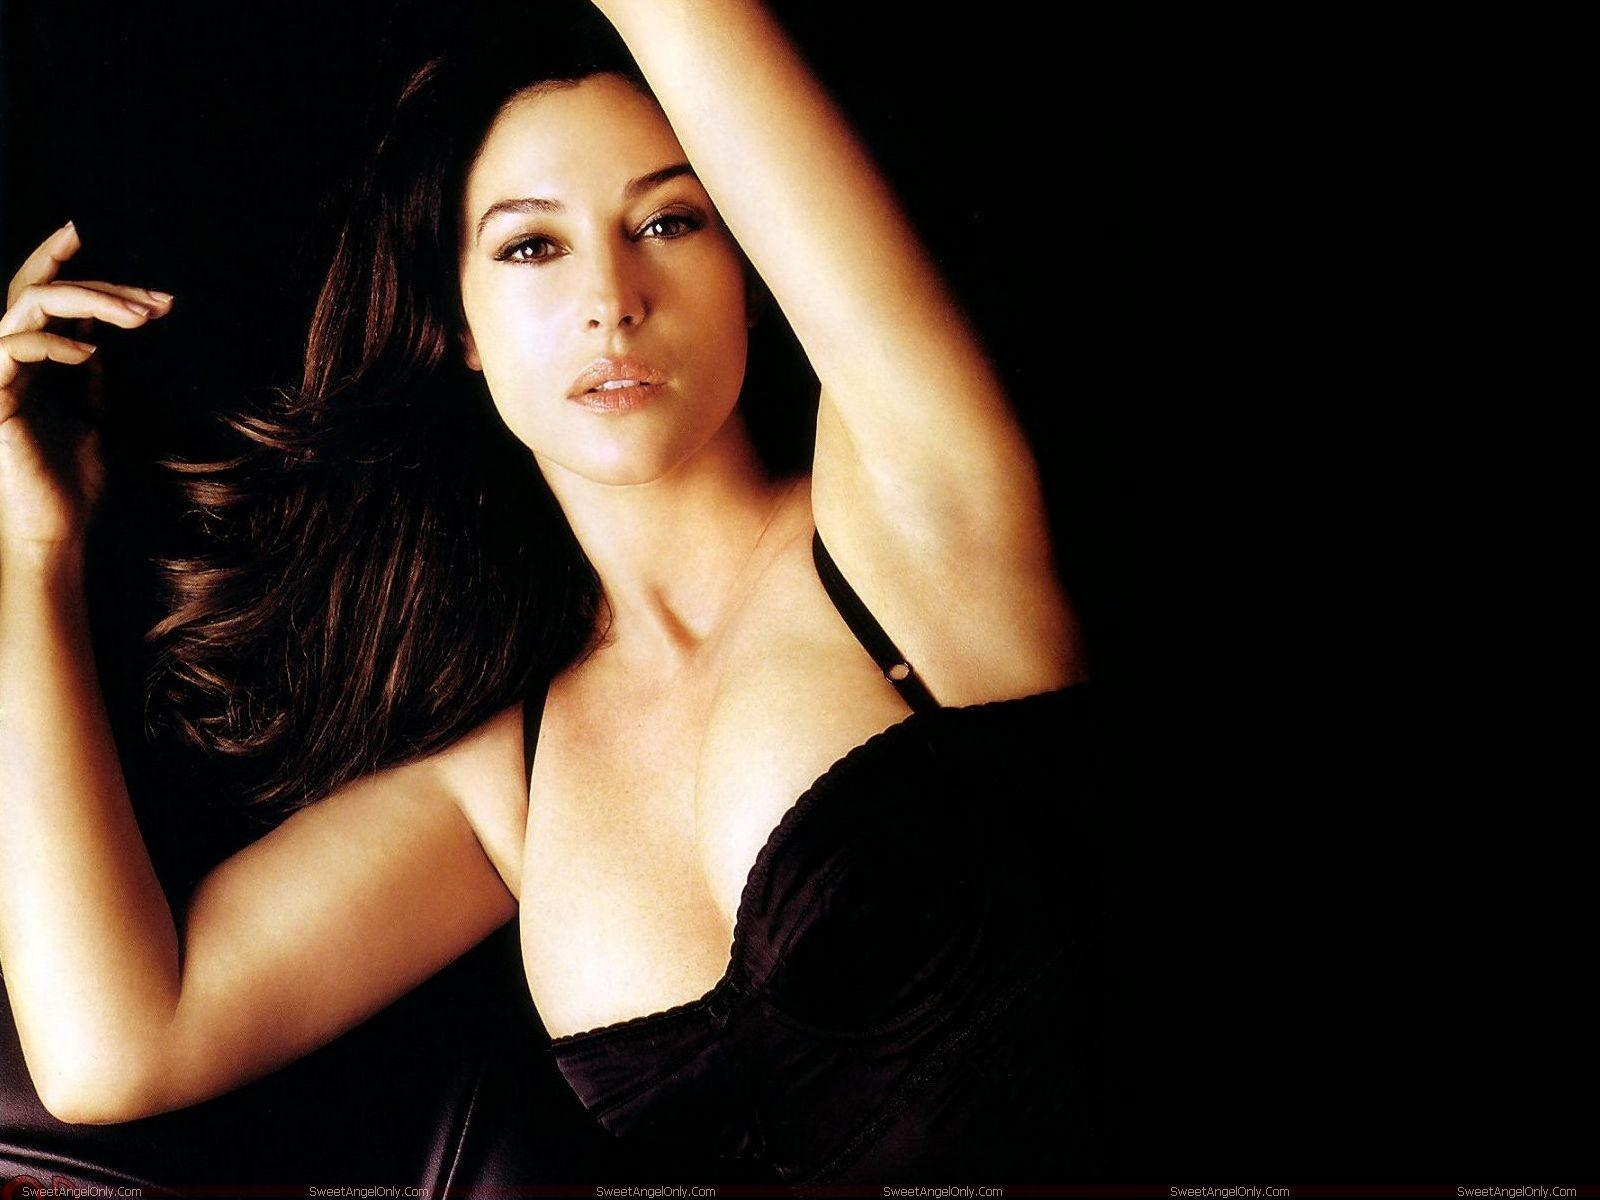 http://4.bp.blogspot.com/-FTMyim12hQg/TaB3At-7J7I/AAAAAAAAGNk/Jd6A4NOgdDU/s1600/monica_bellucci_wallpaper_in_black_sweetangelonly.jpg